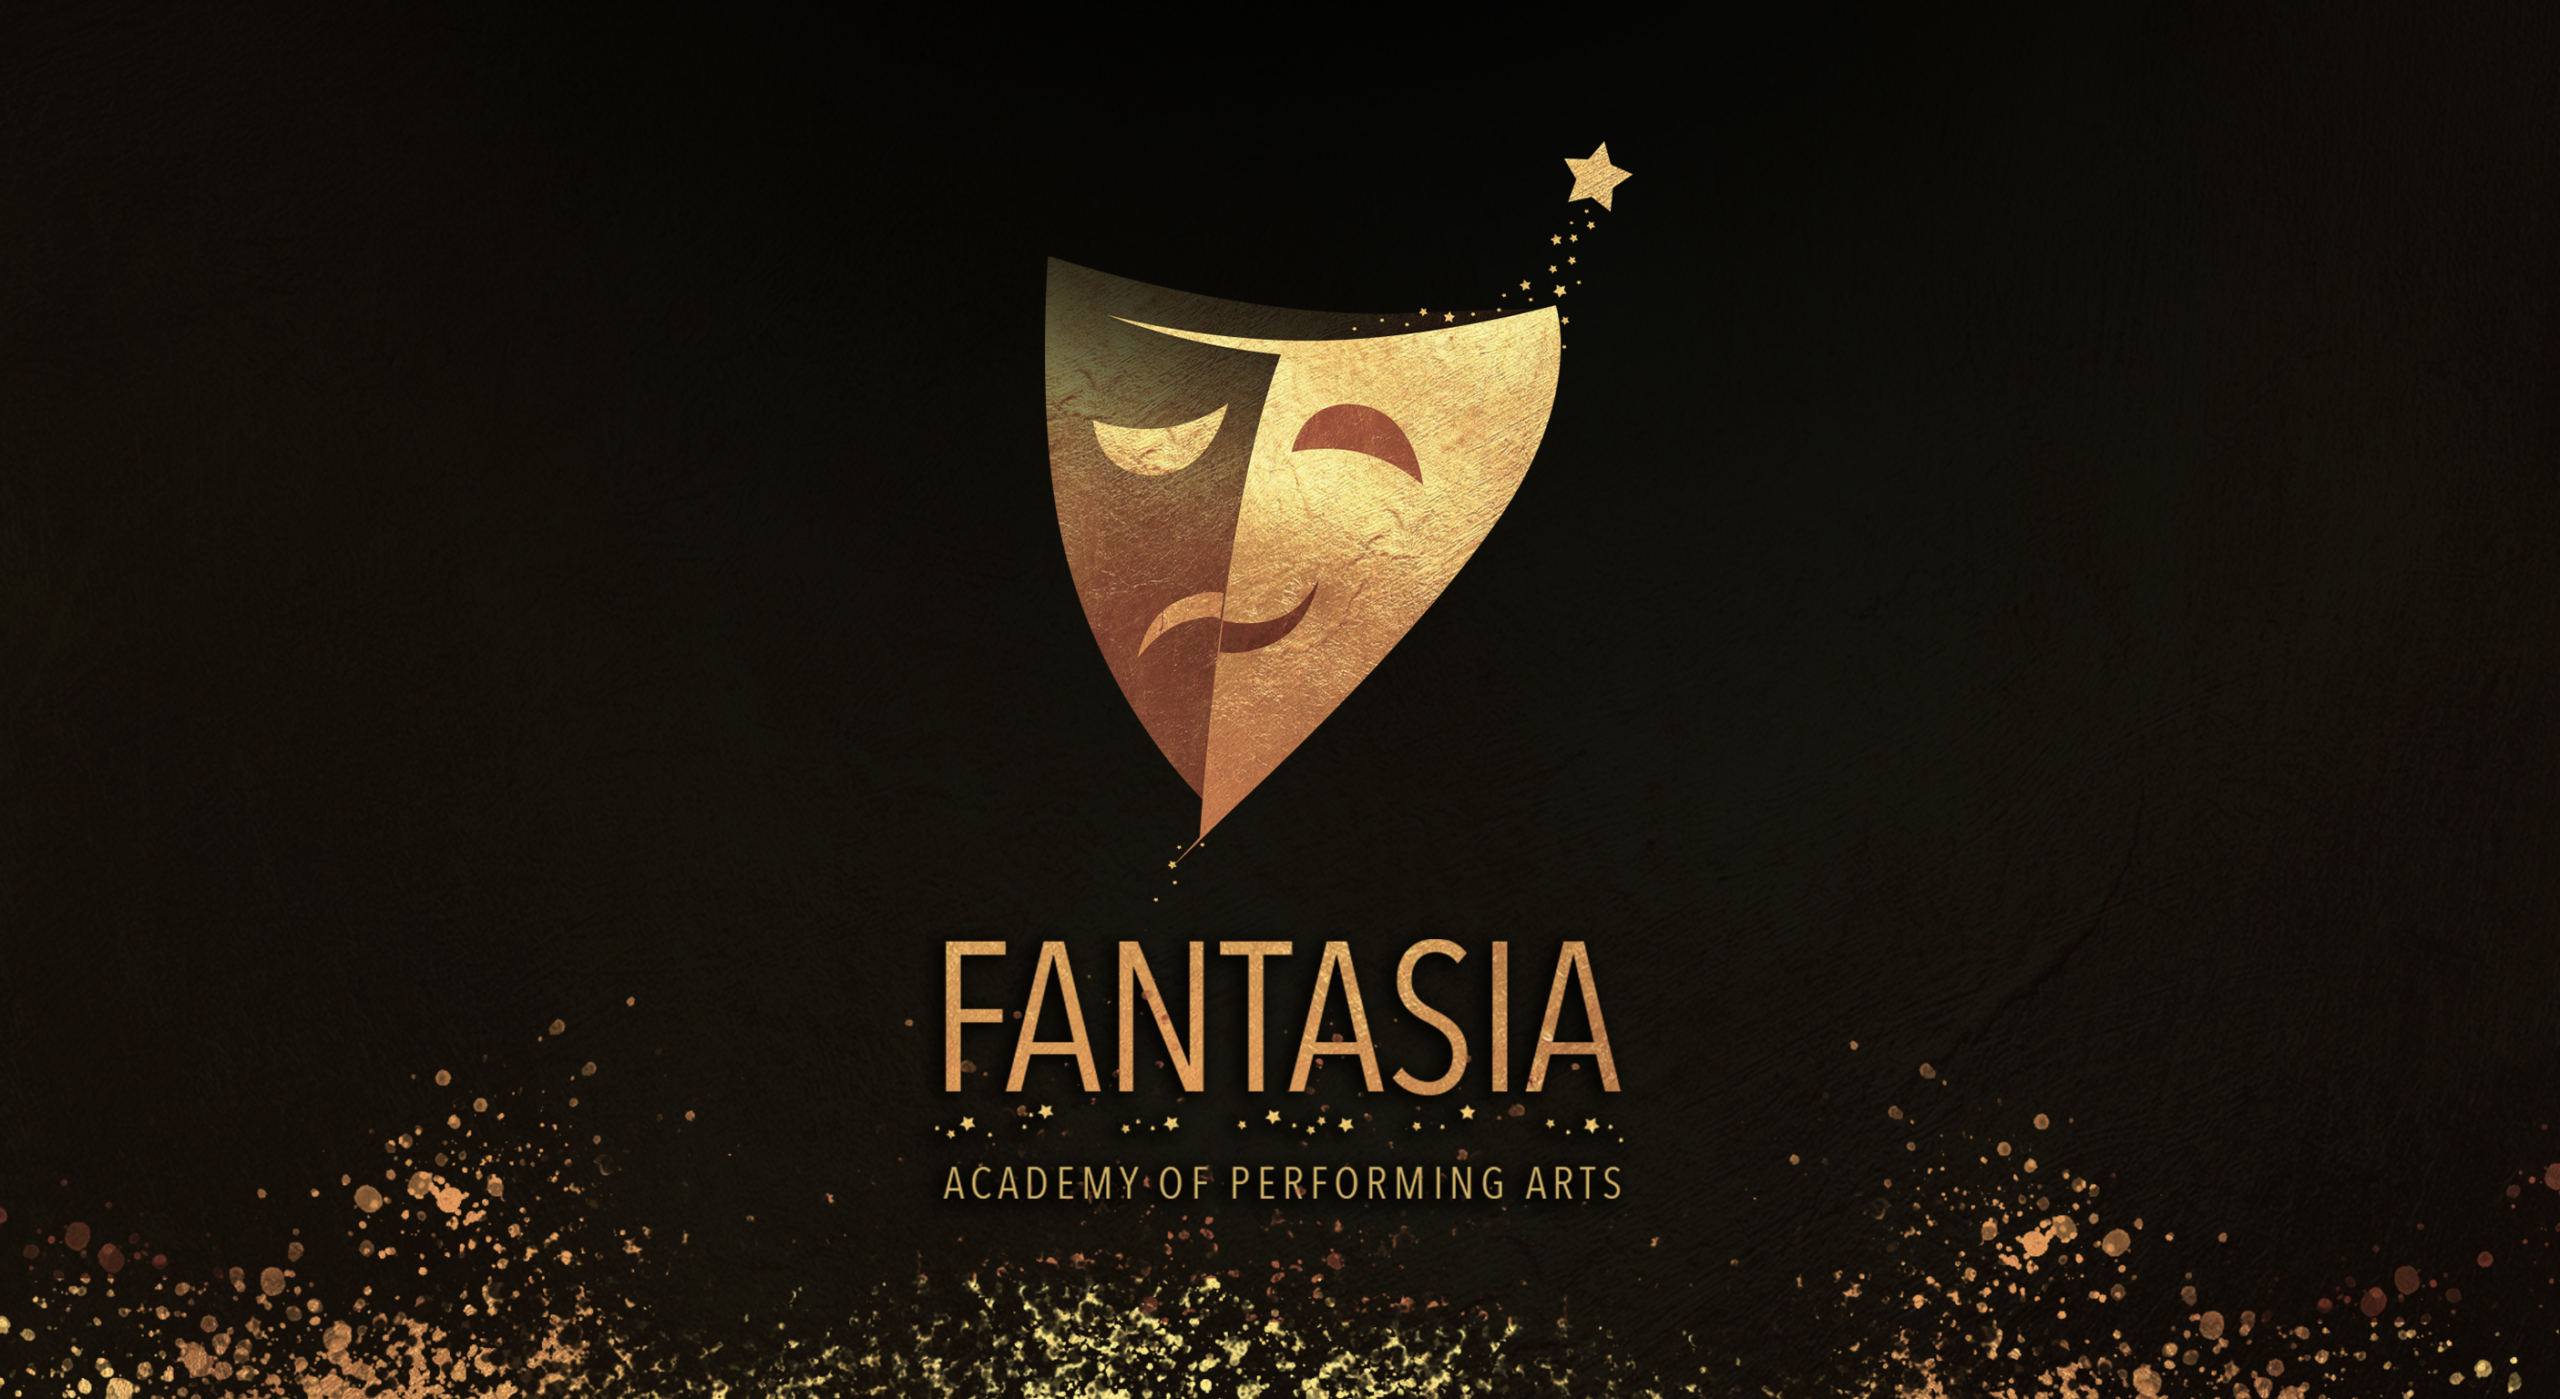 Fantasia Academy is Live